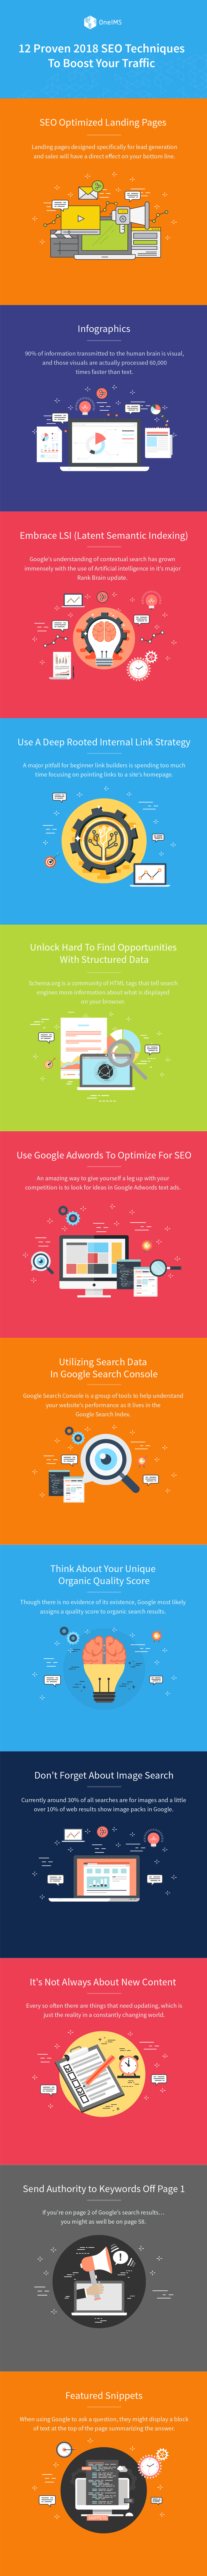 12-SEO-Techniques-2018-Infographic.png